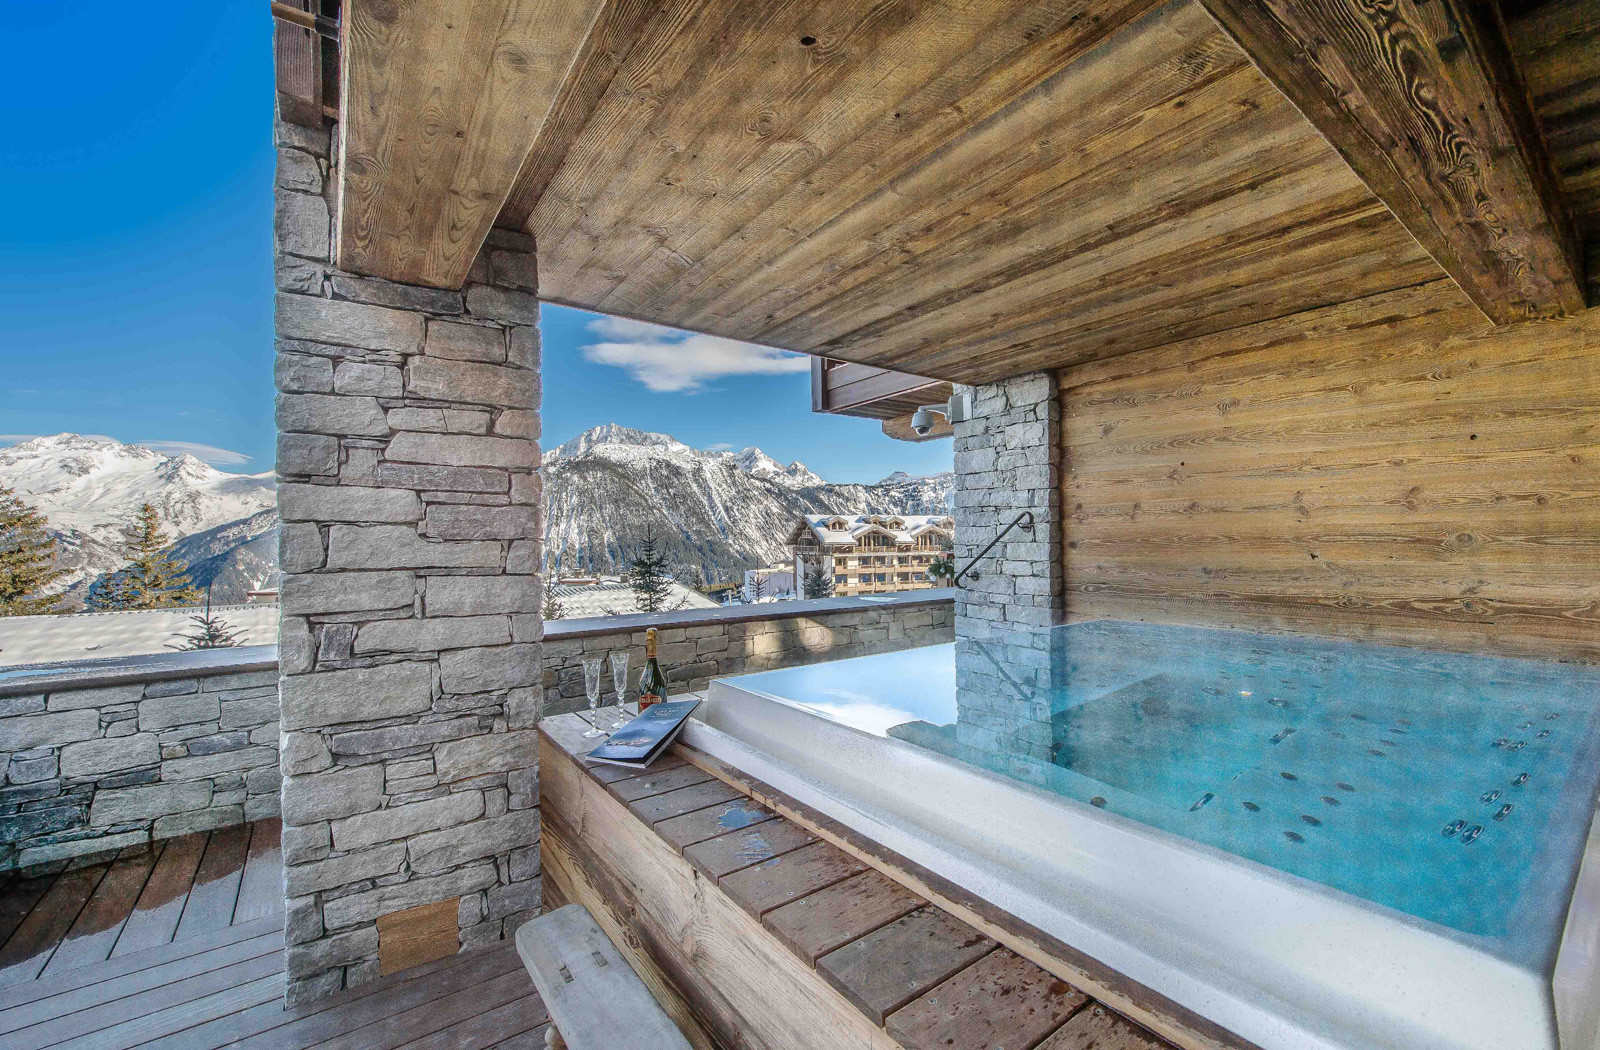 Kings-avenue-courchevel-sauna-jacuzzi-hammam-swimming-pool-gym-boot-heaters-fireplace-ski-in-ski-out-welness-area-bar-massage-room-lift-area-courchevel-024-6